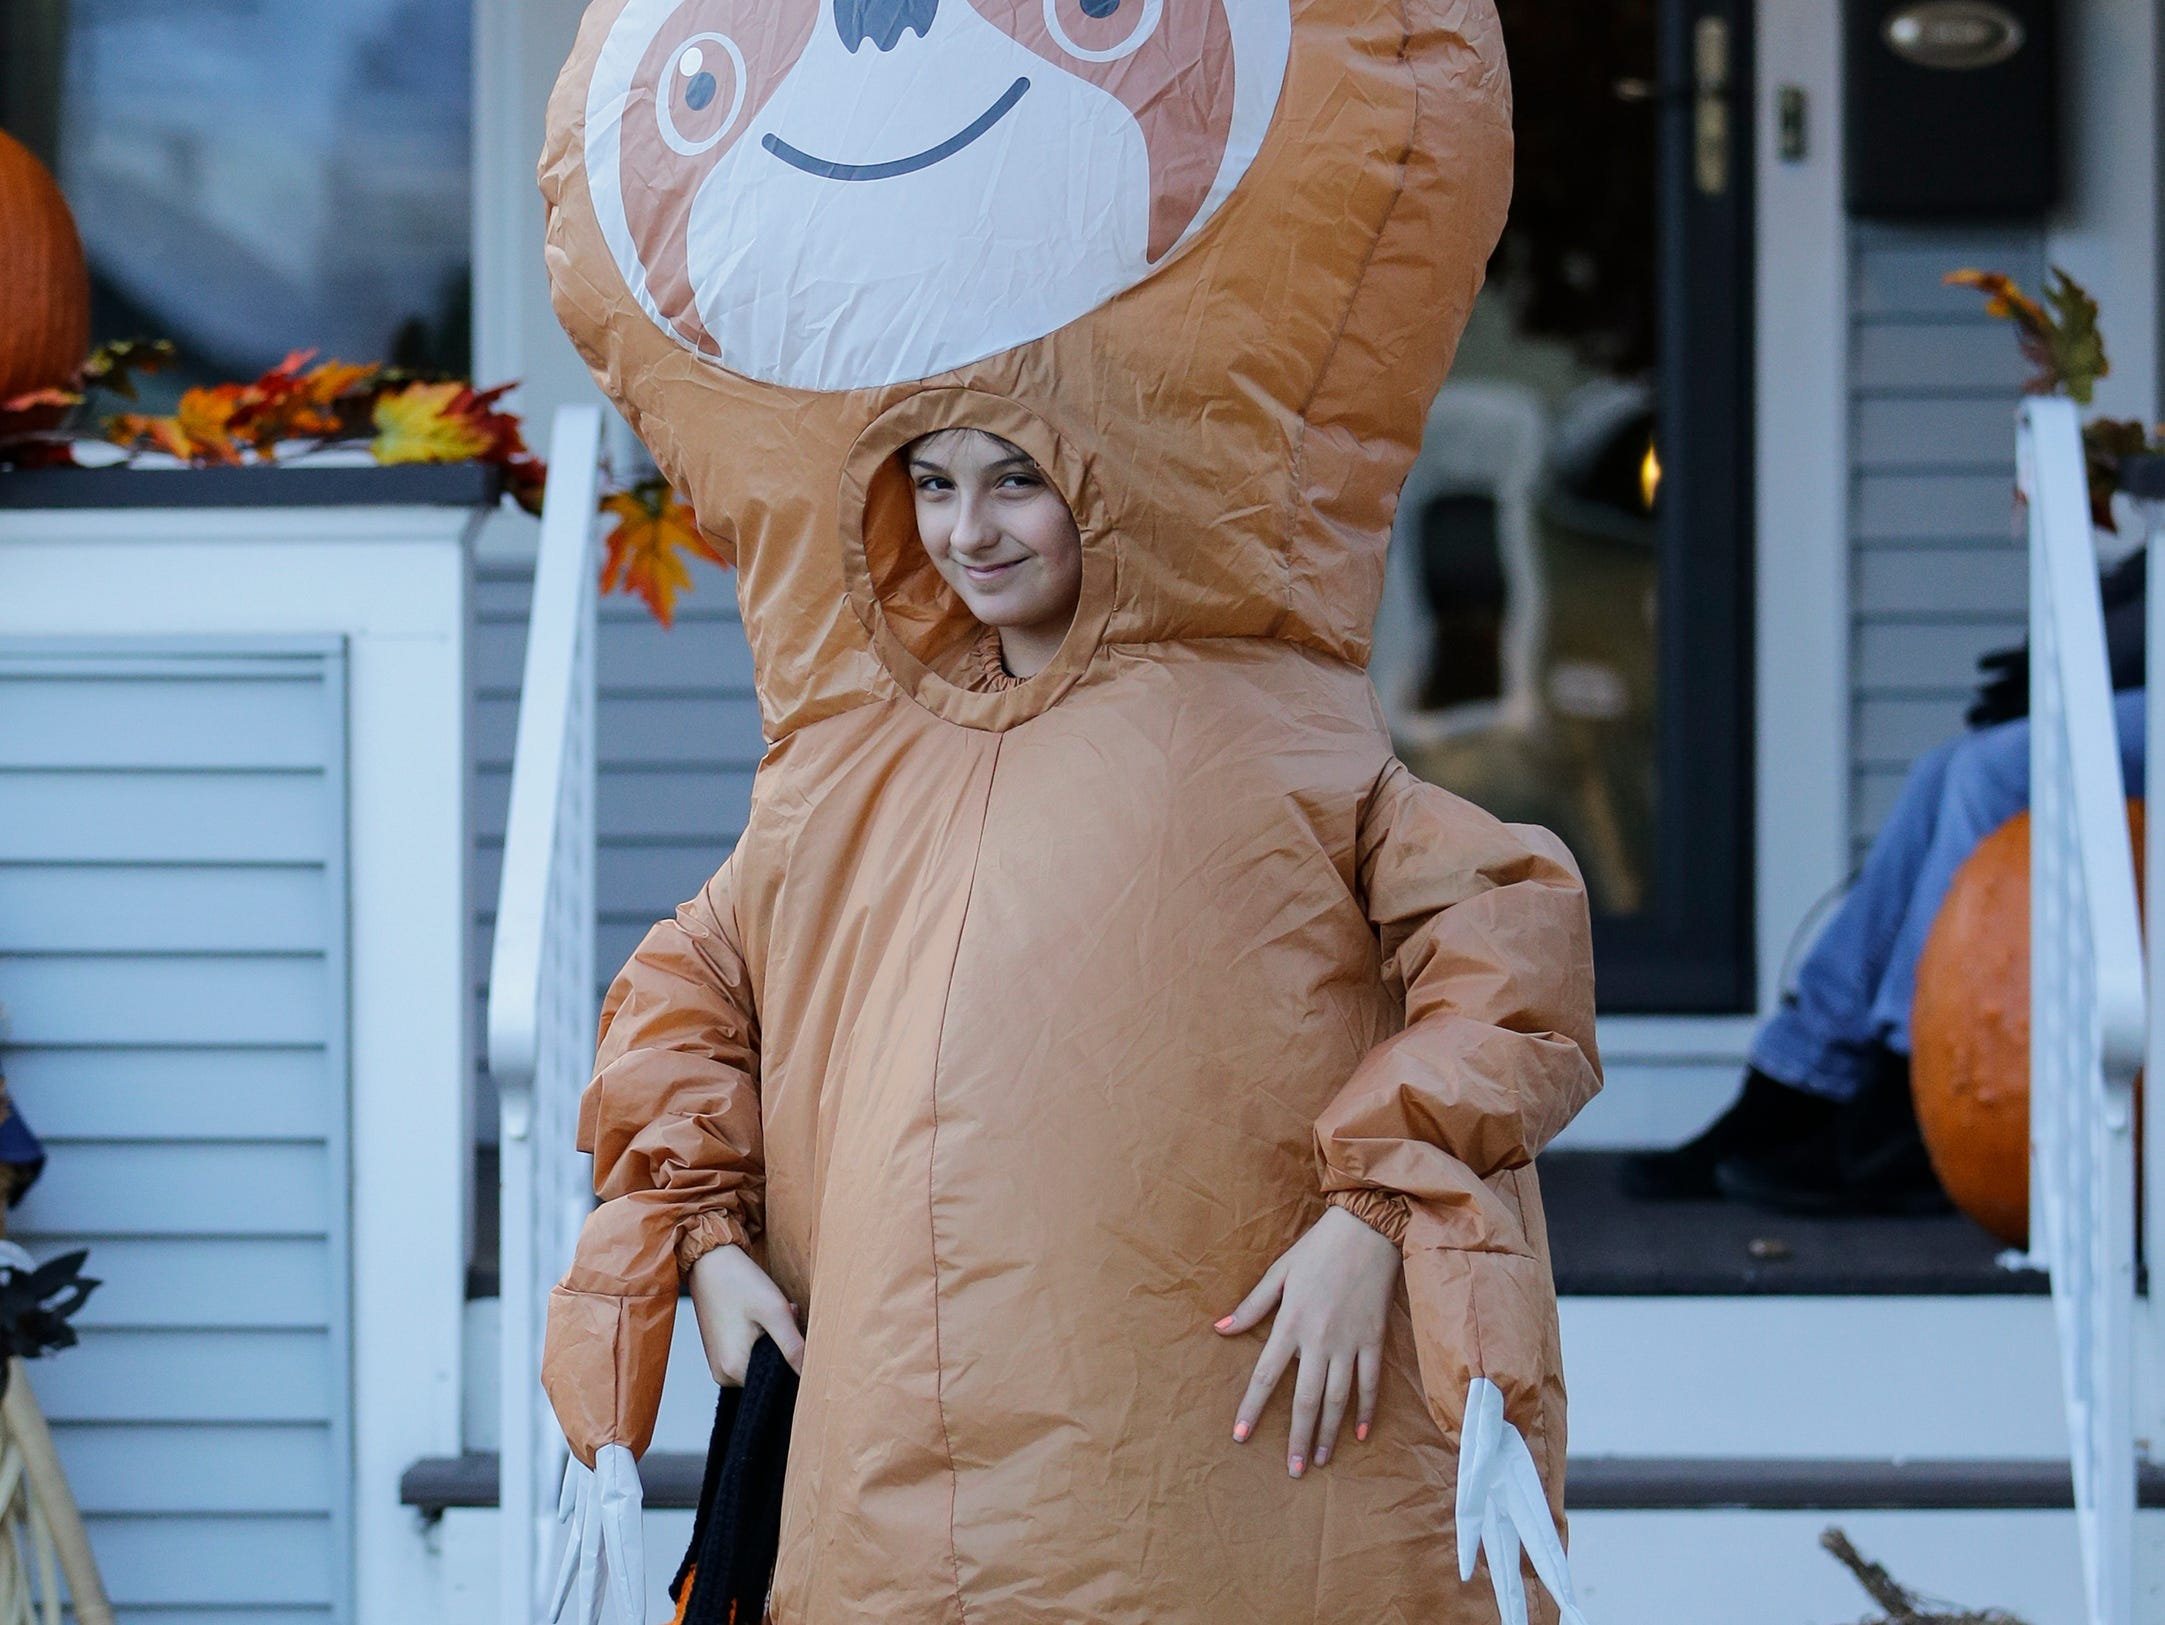 Tatyana Arriaga trick or treats in a sloth costume on Halloween Wednesday, October 31, 2018, in Manitowoc, Wis. Joshua Clark/USA TODAY NETWORK-Wisconsin